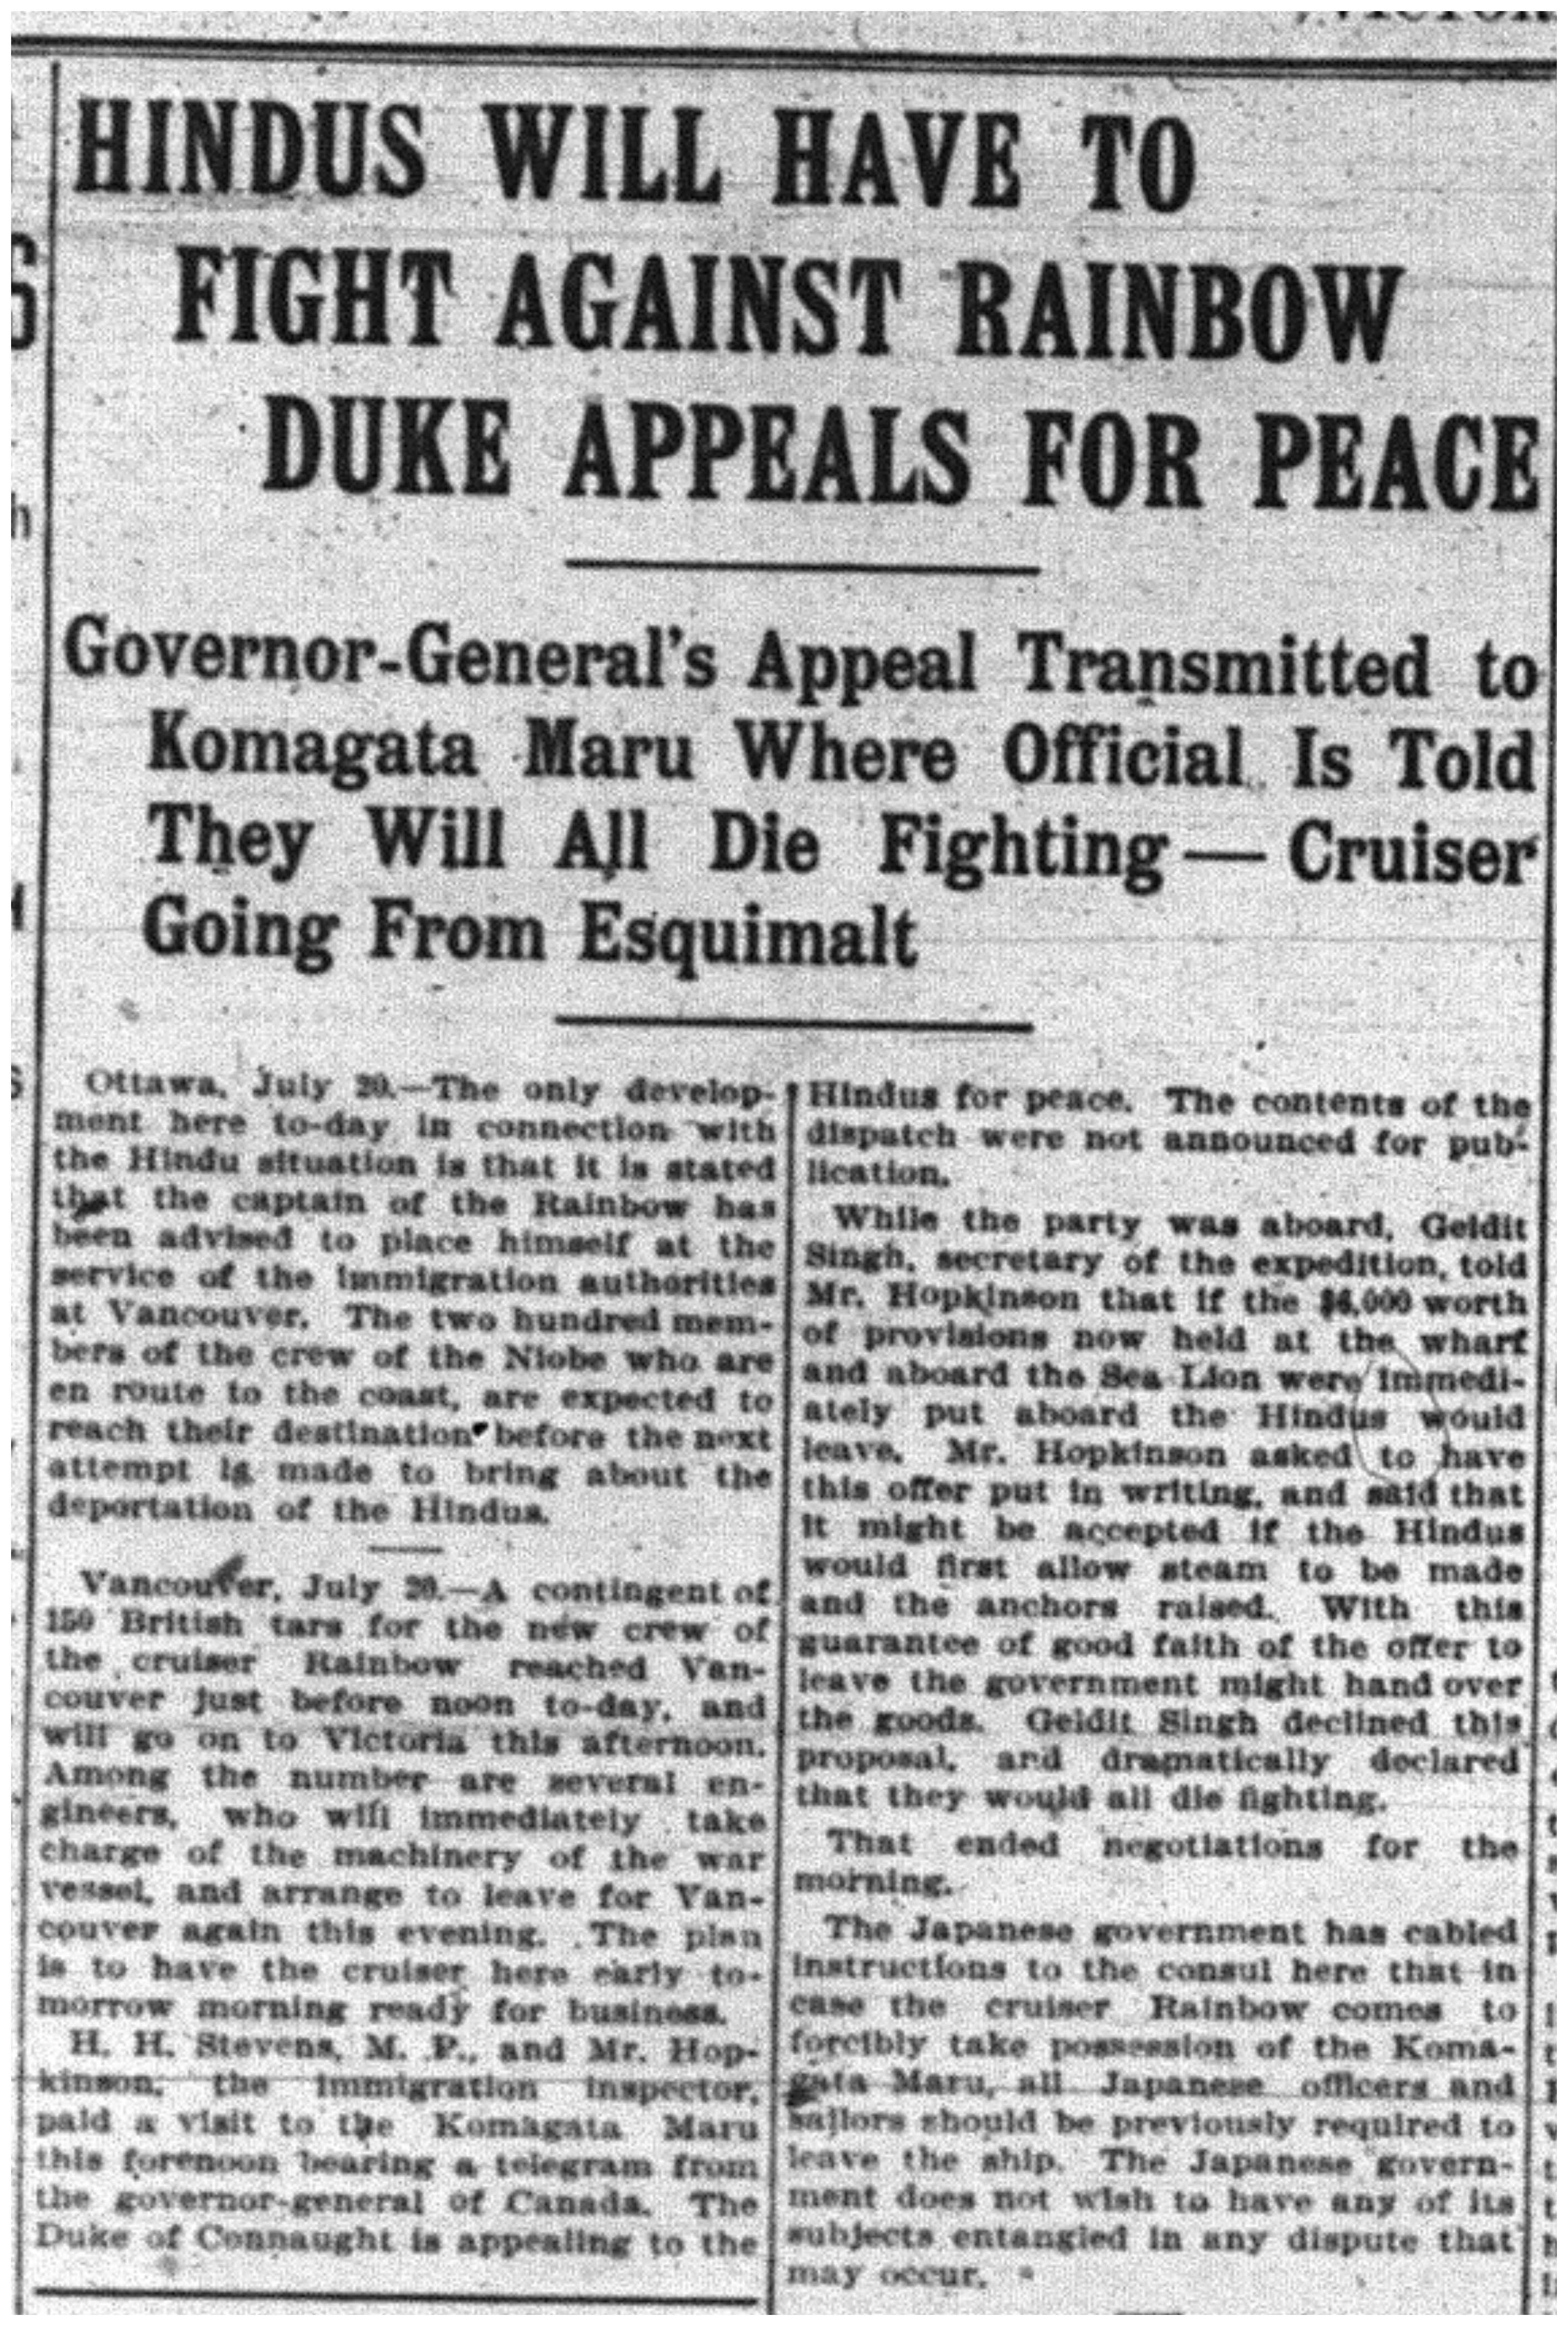 """Hindus Will Have to Fight Against Rainbow - Duke Appeals for Peace"""